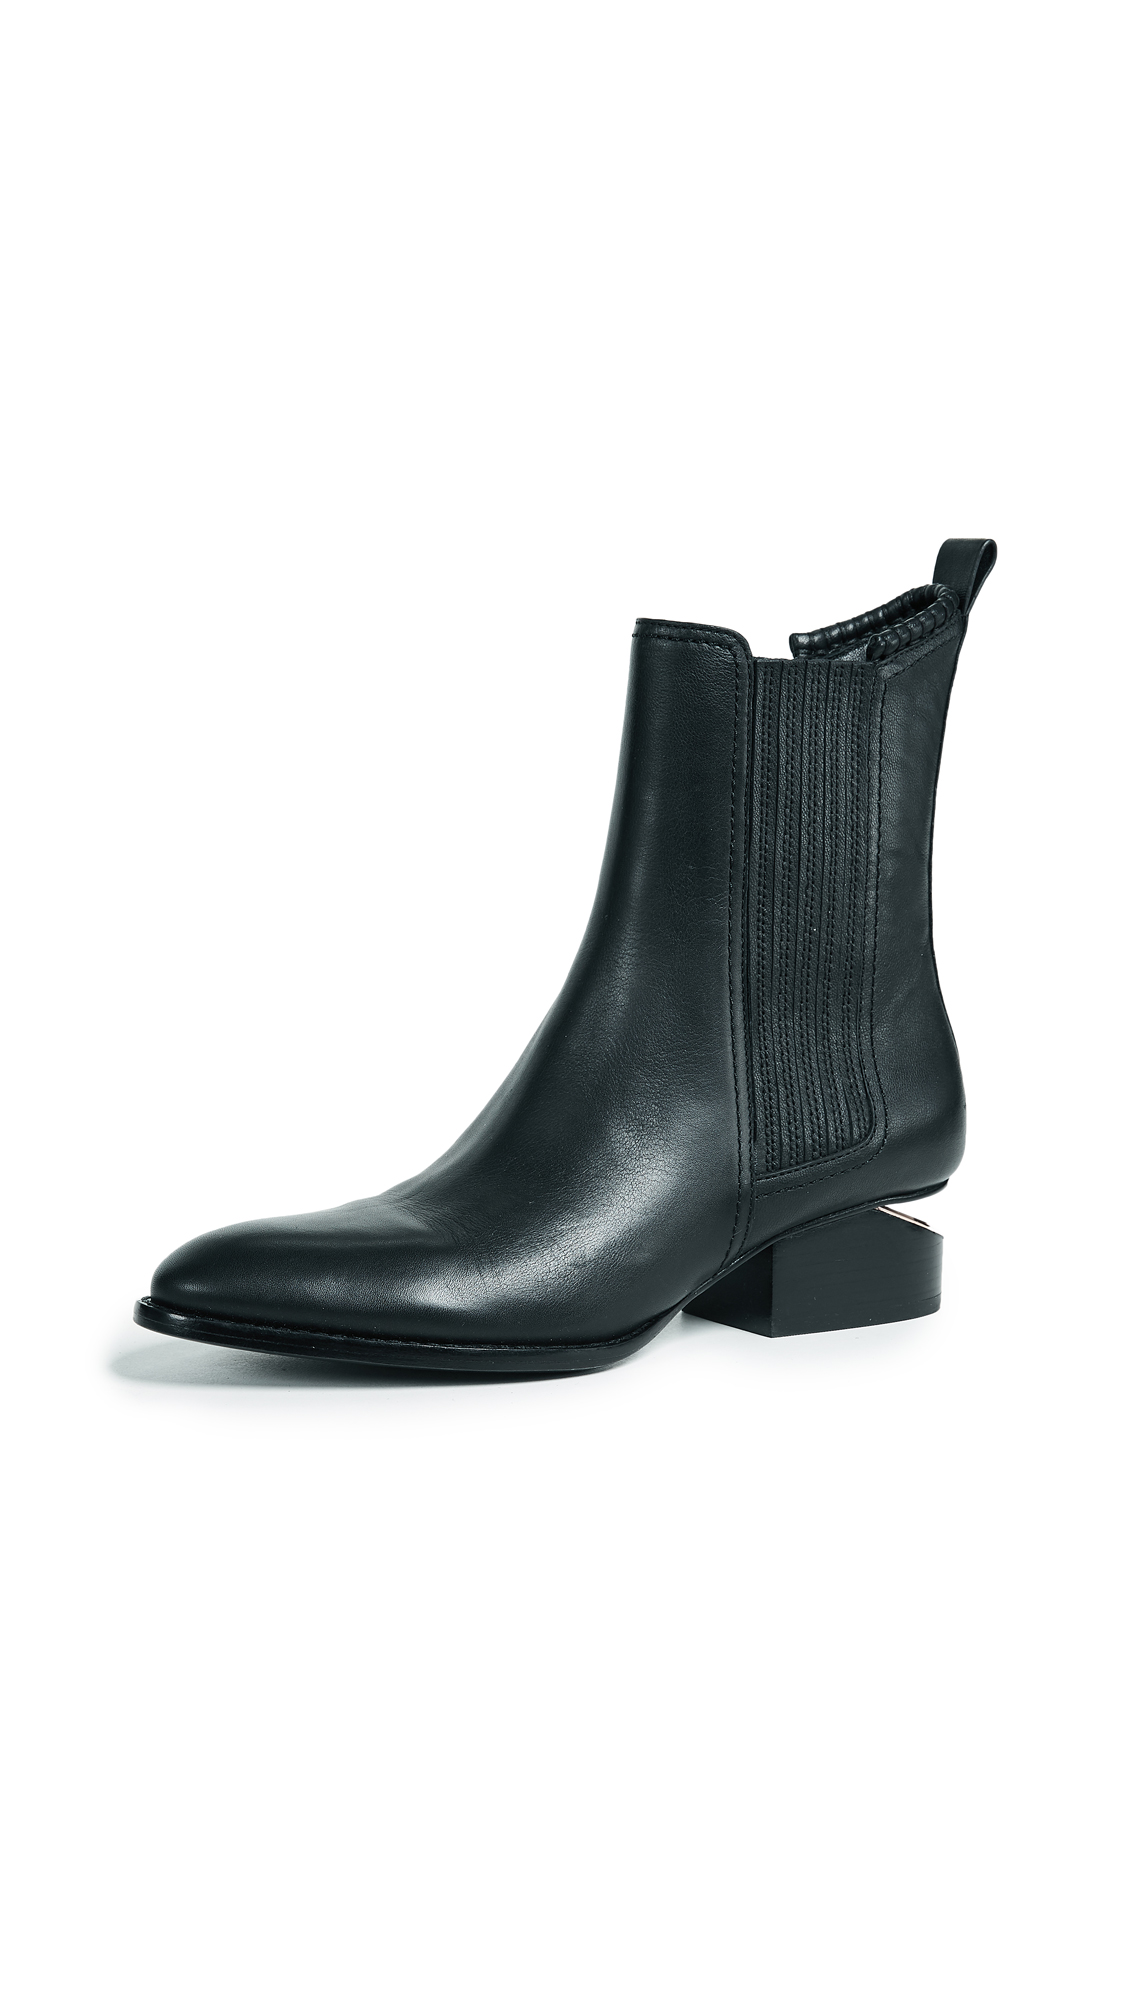 Alexander Wang Anouck Boots - Black/Rose Gold